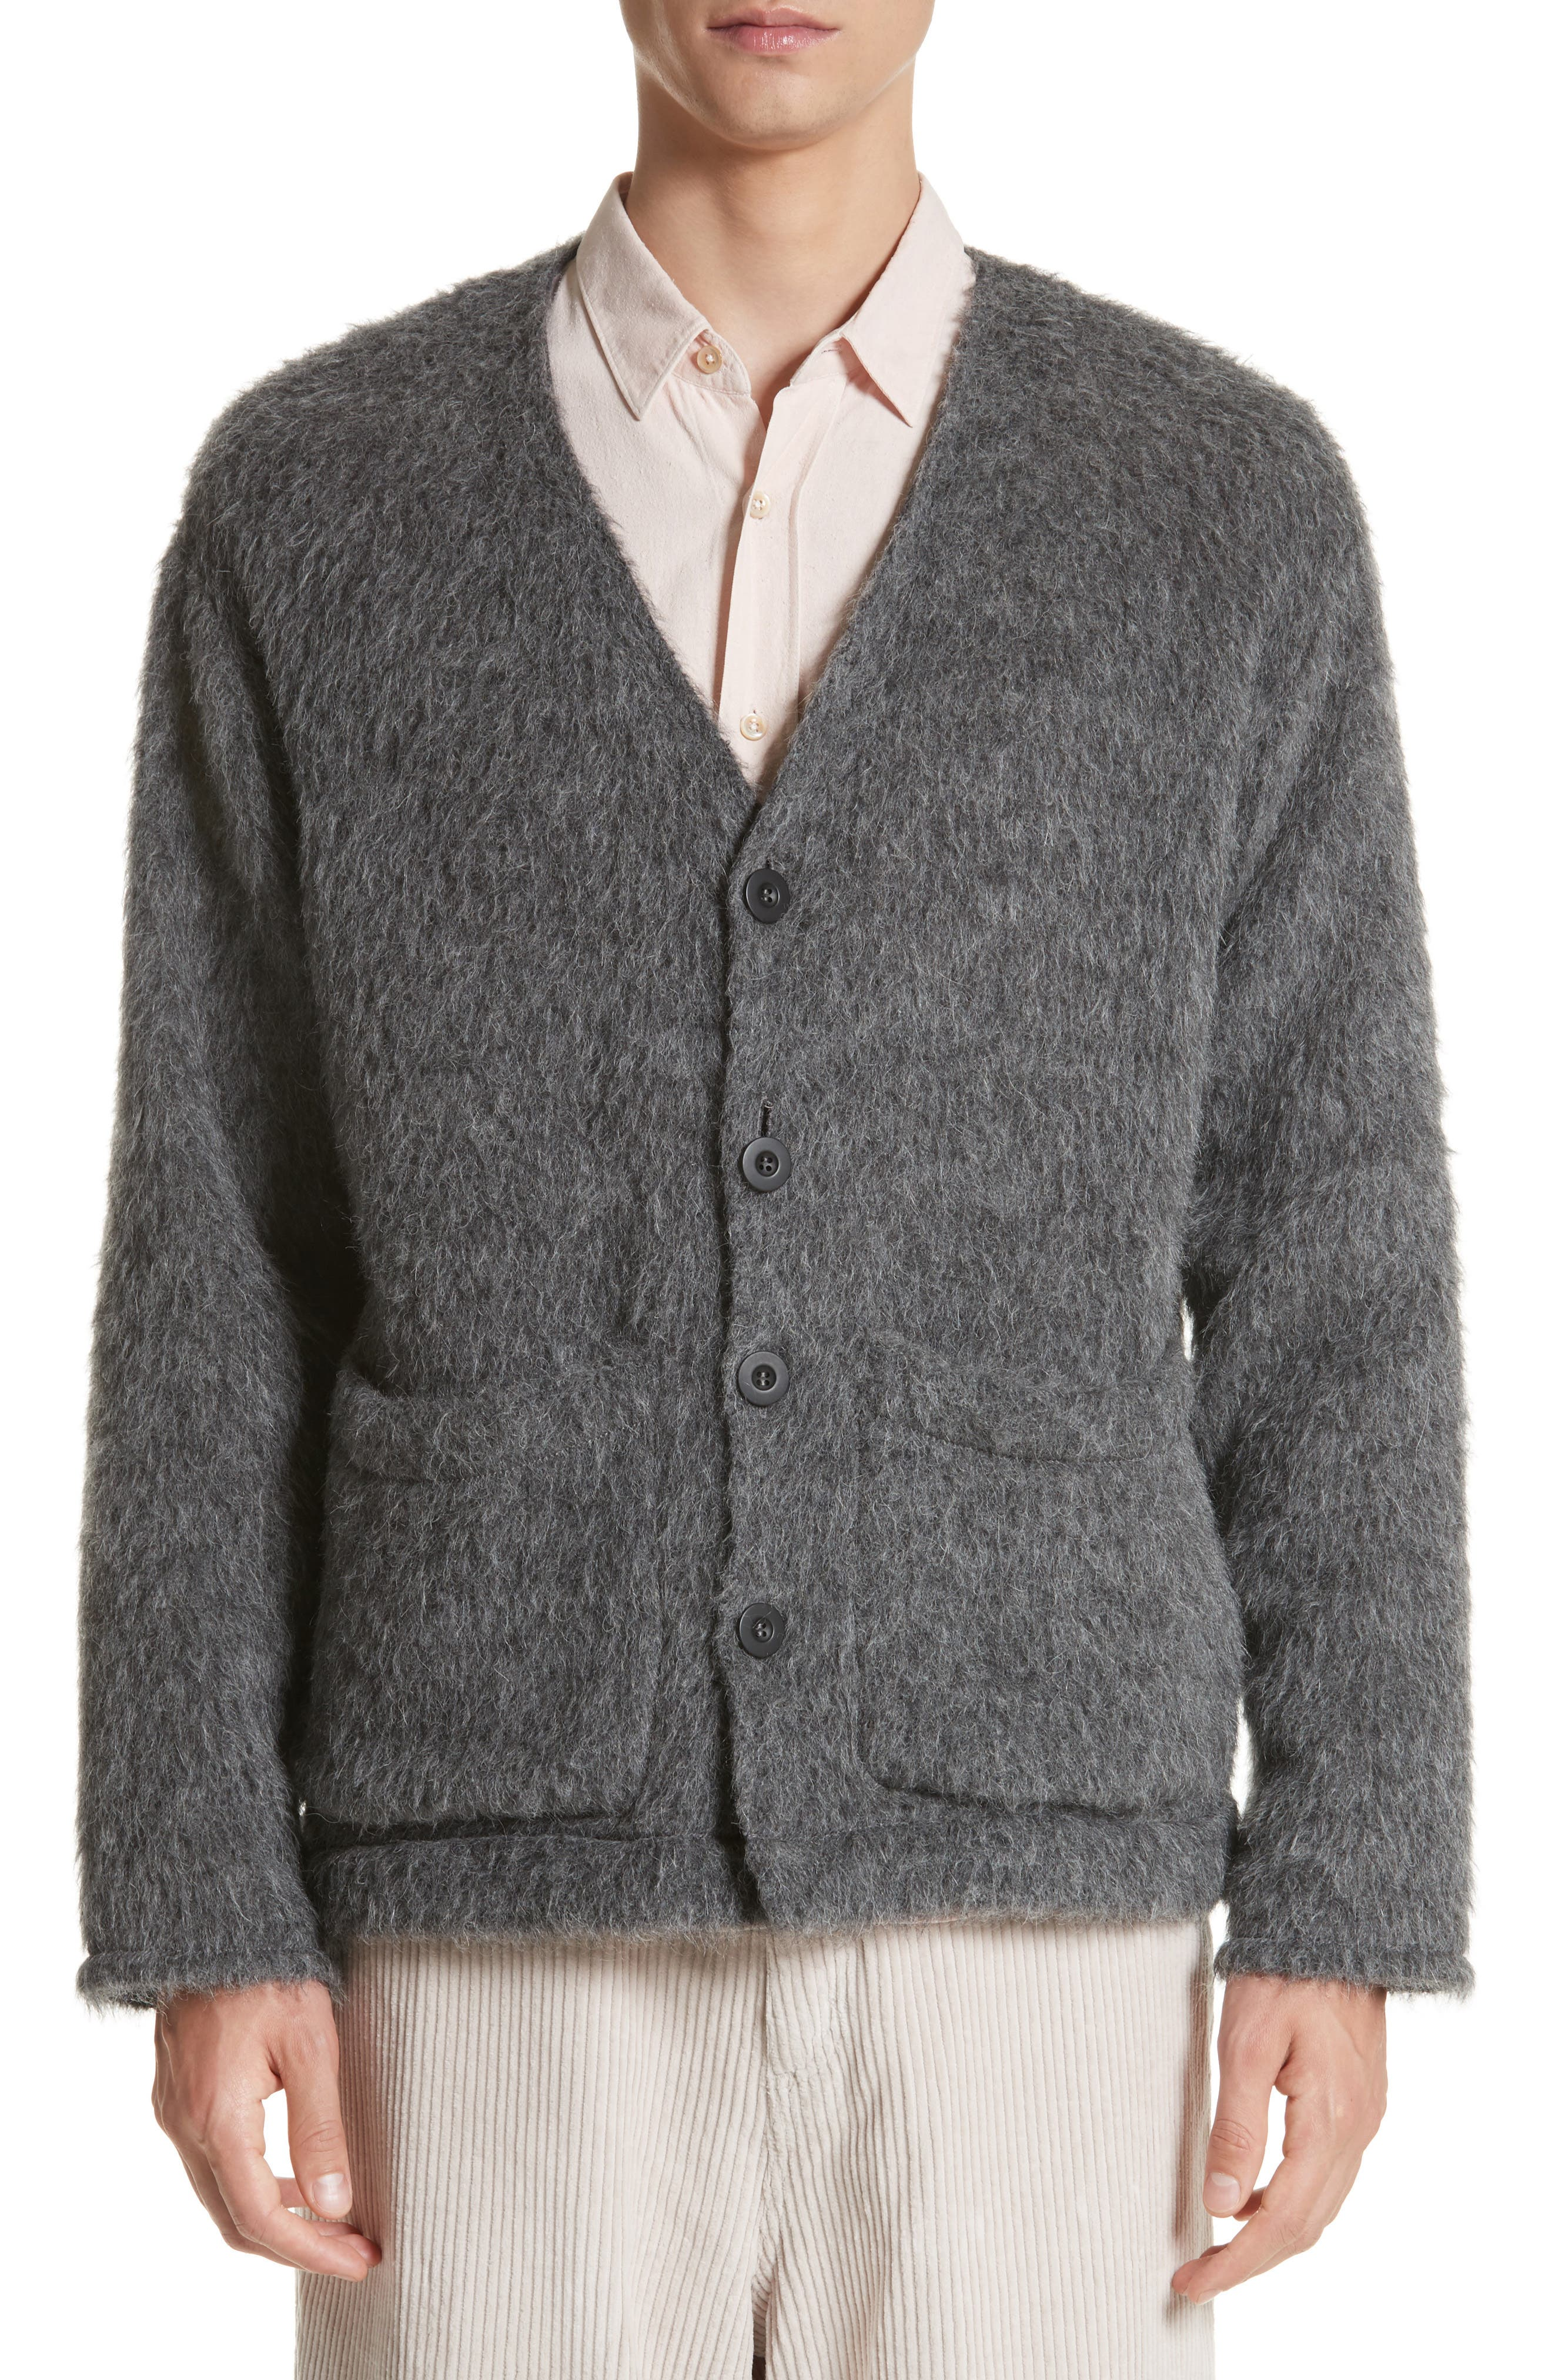 Alternate Image 1 Selected - Our Legacy Fuzz Cardigan